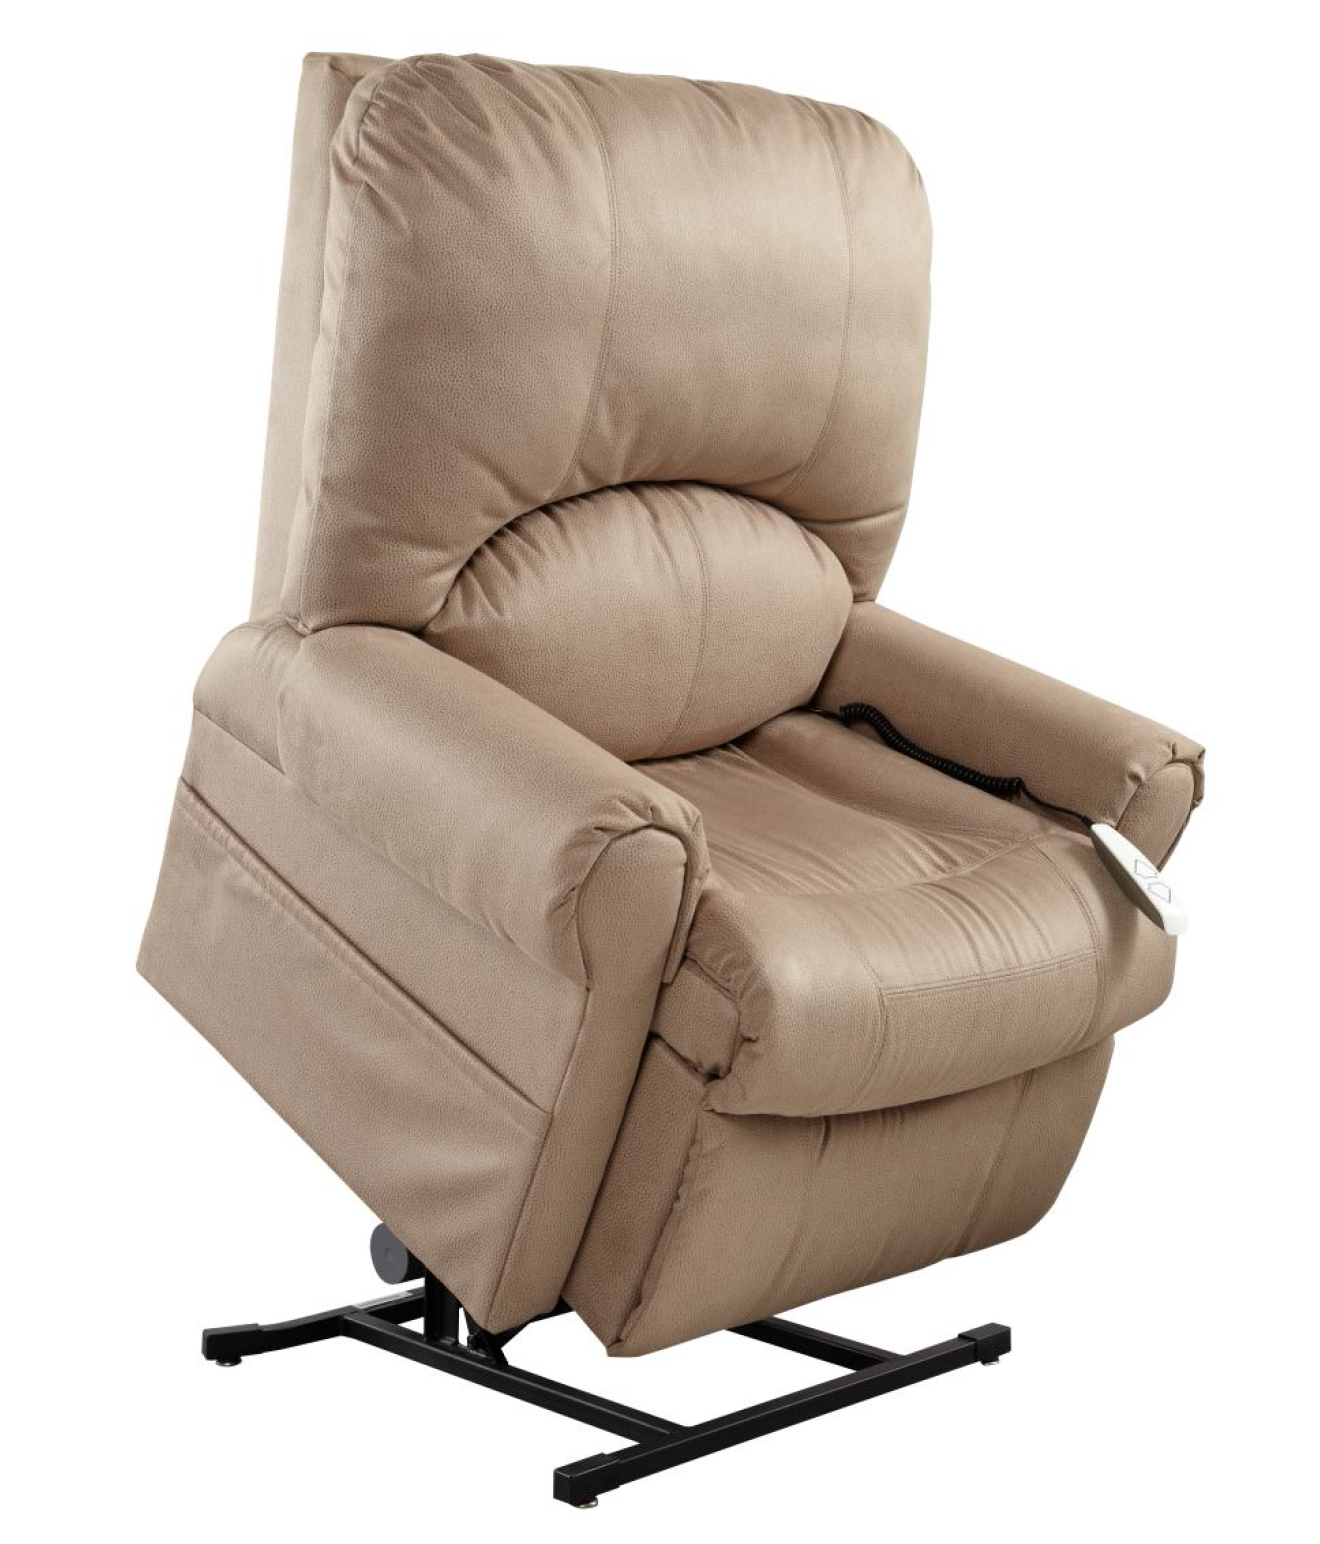 Genial Mega Motion AS 6001 Torch Electric Power Recline Easy Comfort Lift Chair  Recliner